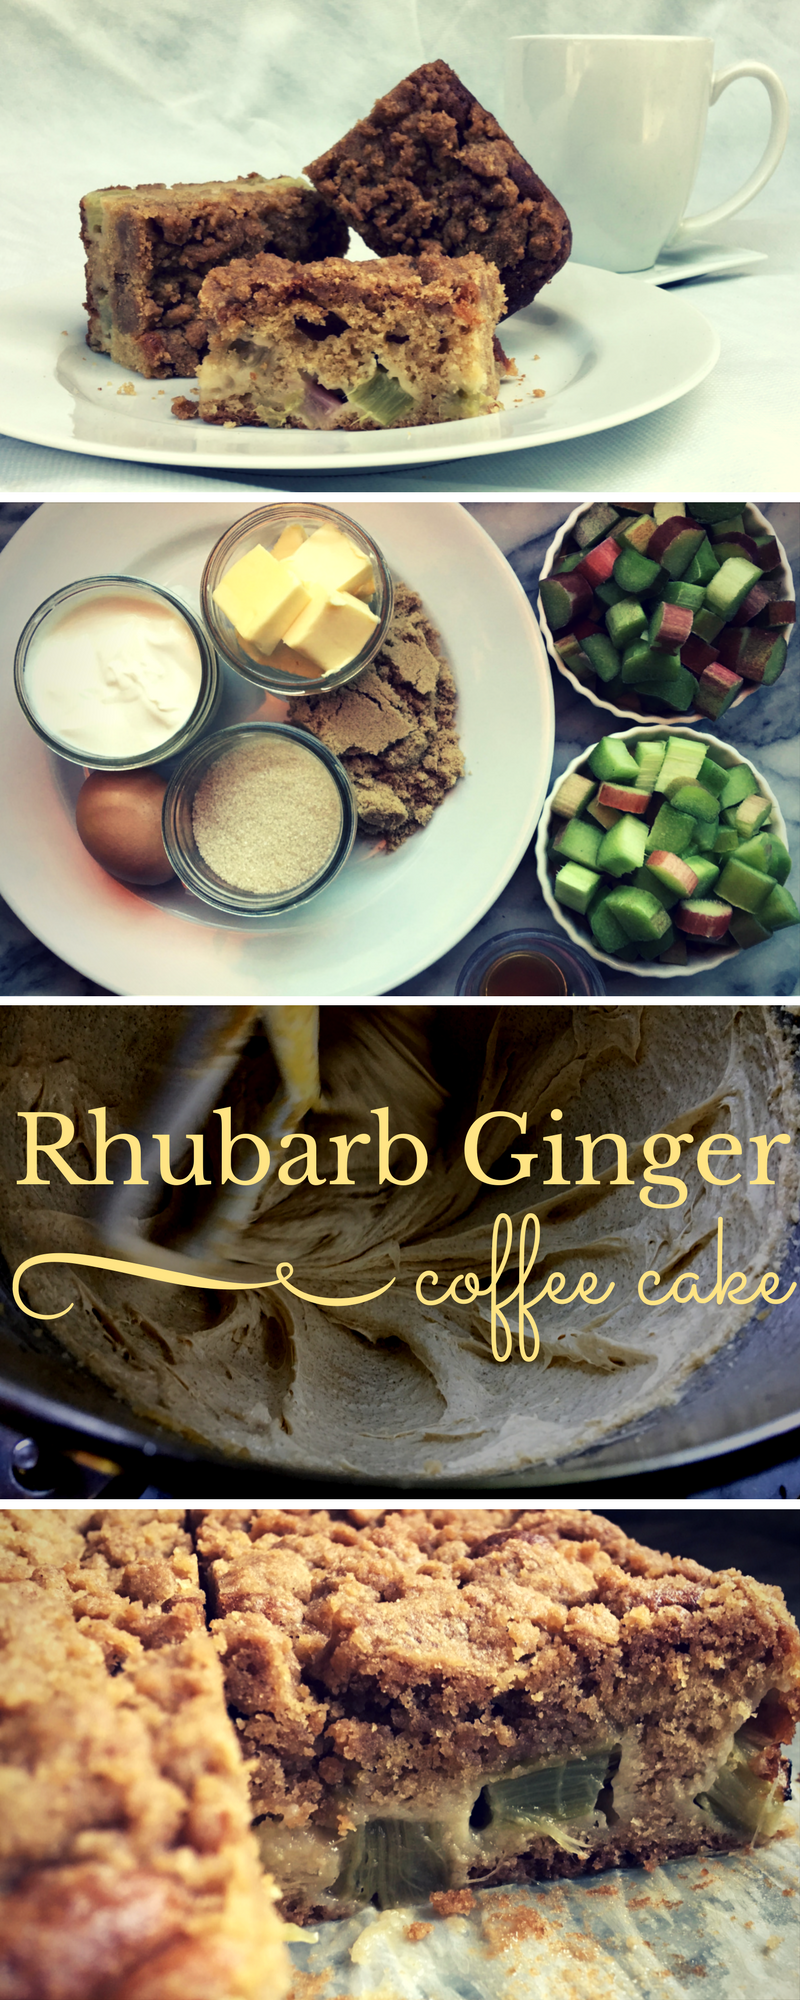 How to make ginger coffee